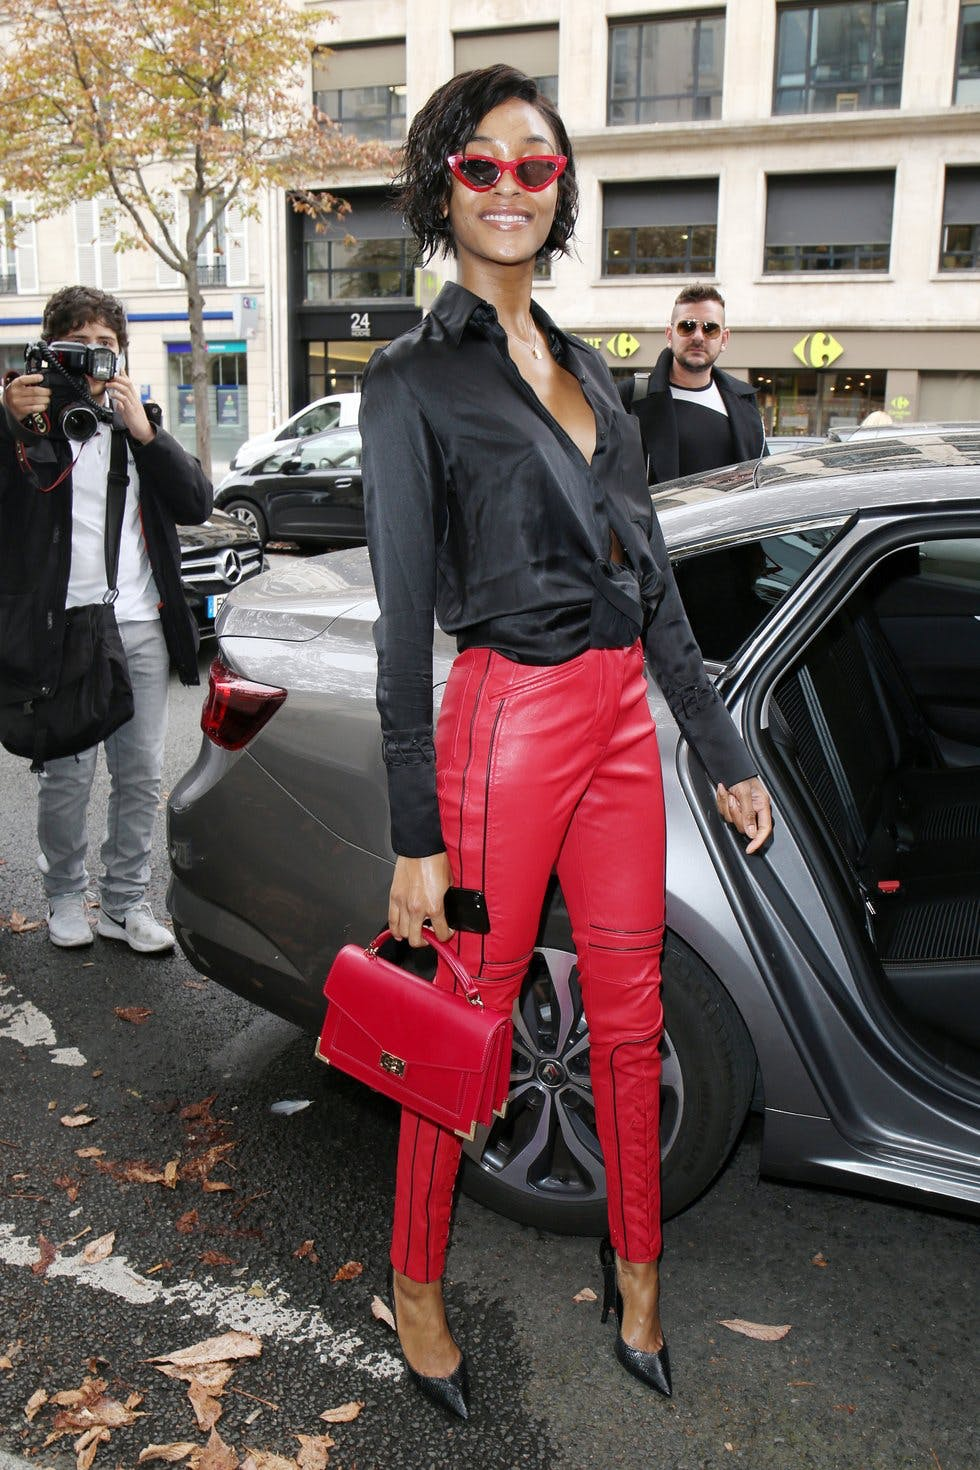 06b726b120f3e Not one for the faint-hearted, red leather trousers pack a serious  sartorial punch. Pair with a black shirt and heels à la Jourdan Dunn for  maximum impact, ...